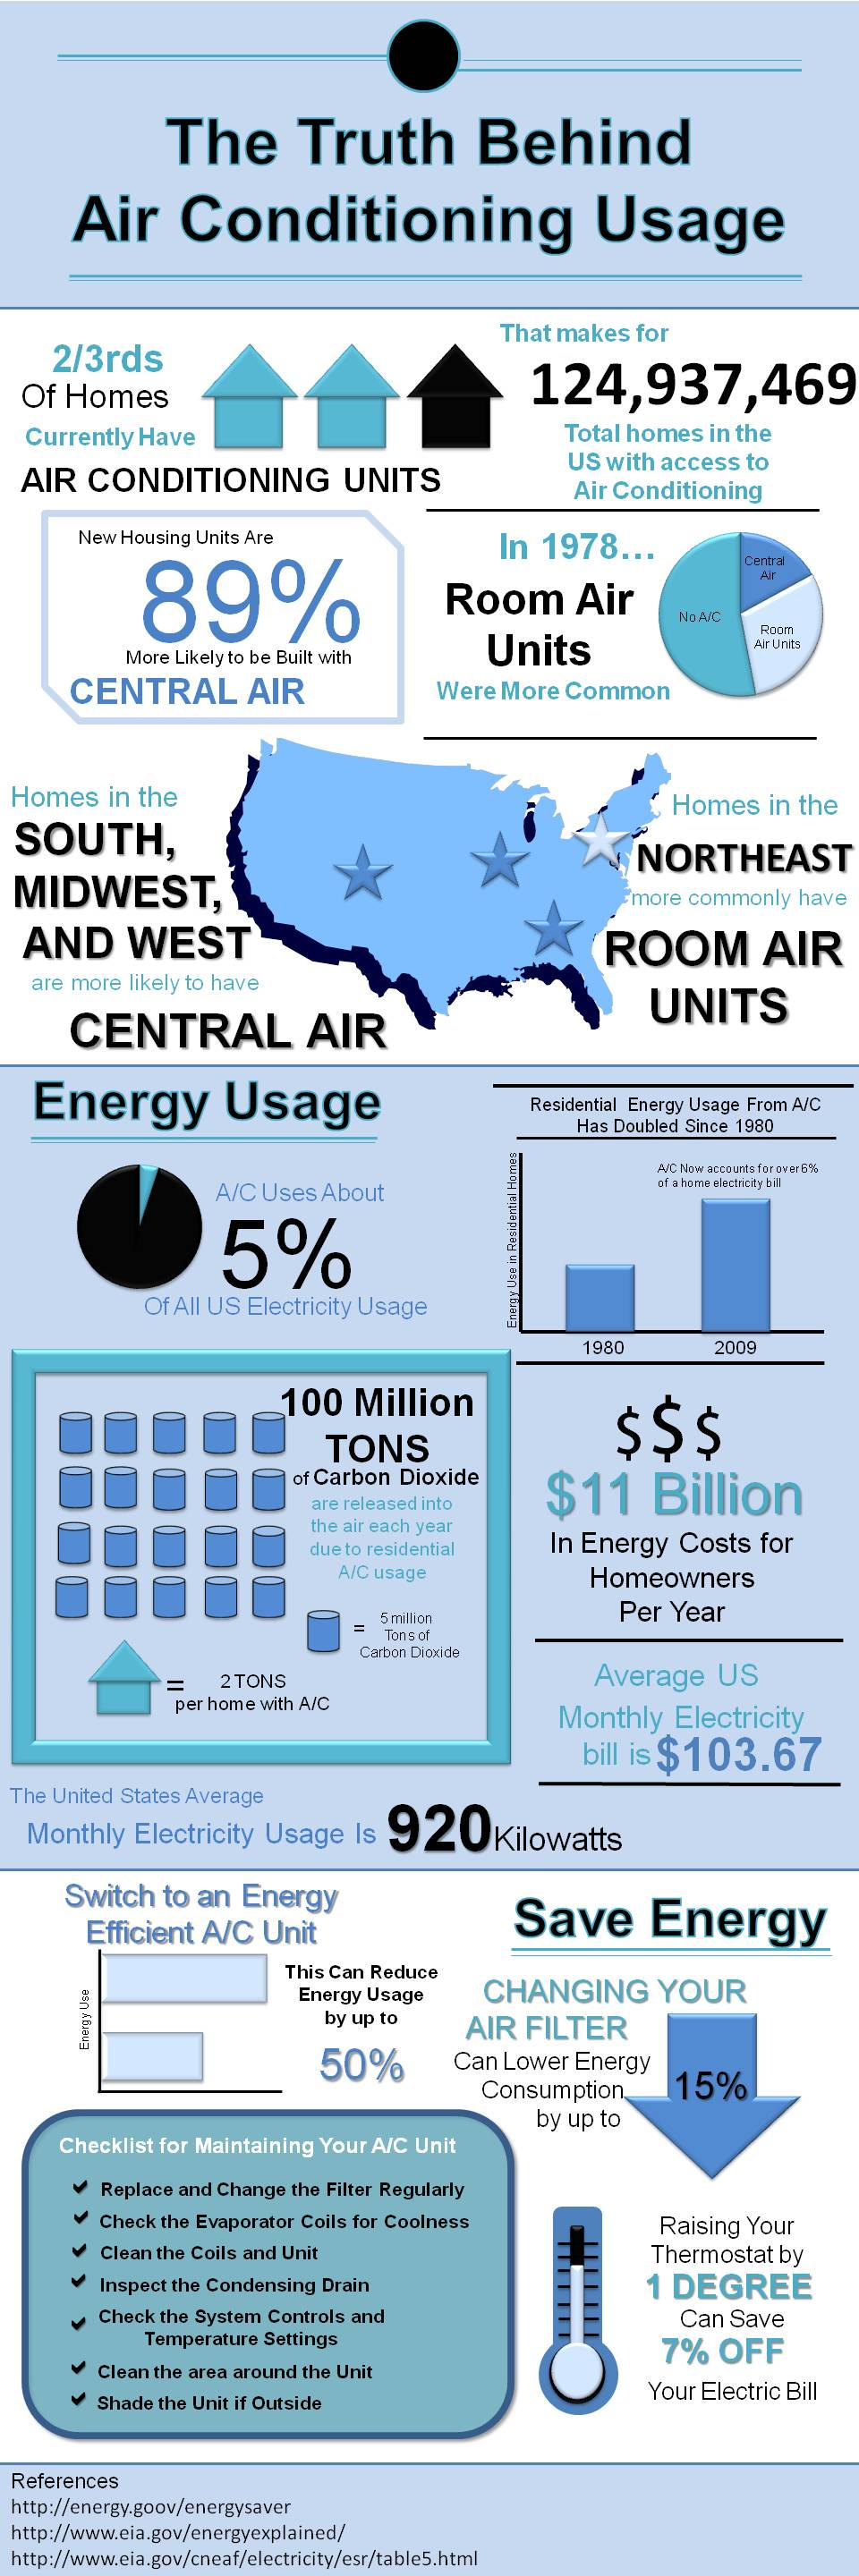 The truth behind AC Usage infographic by DiscountFilters.com #AC #Home #Infograhic